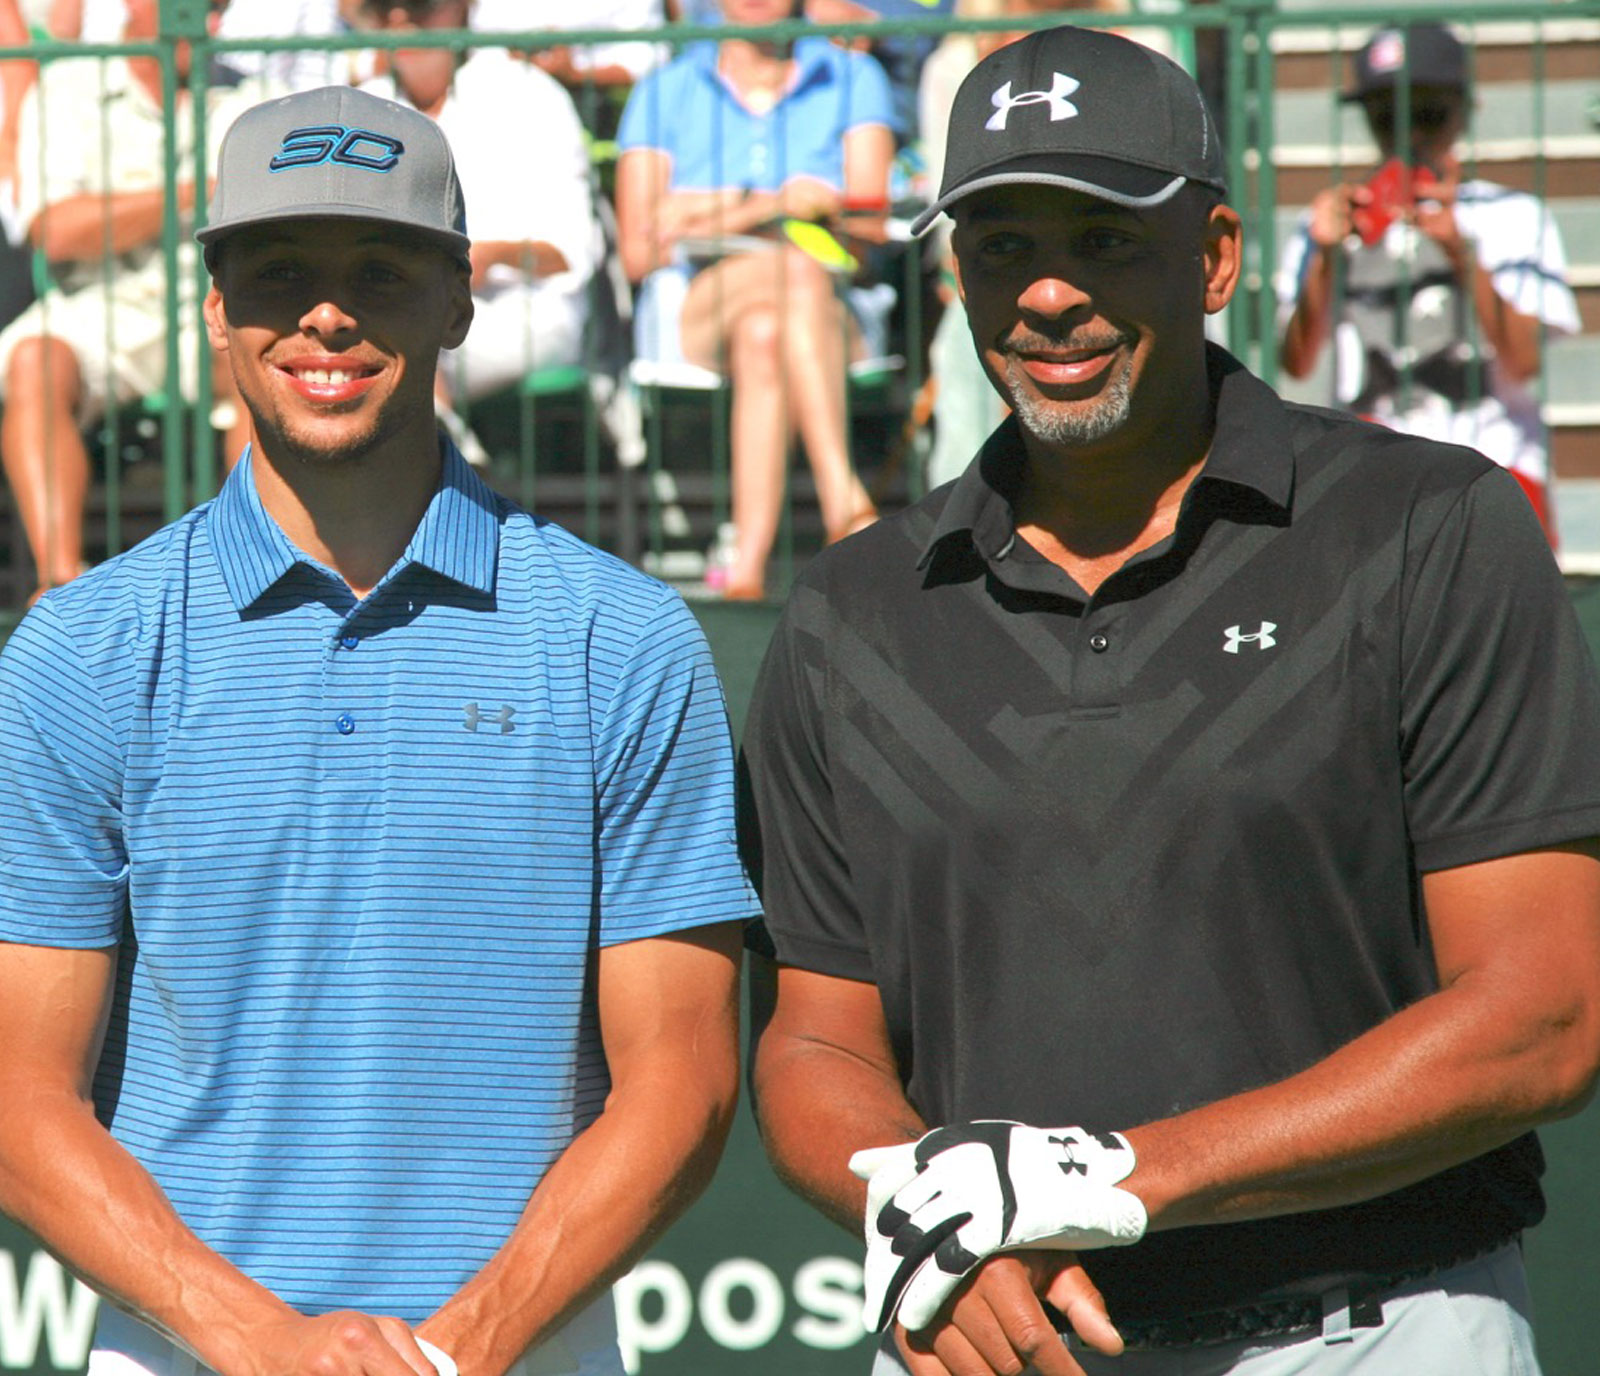 Steph Curry Aims at Lake Tahoe | 19TH HOLE MAGAZINE